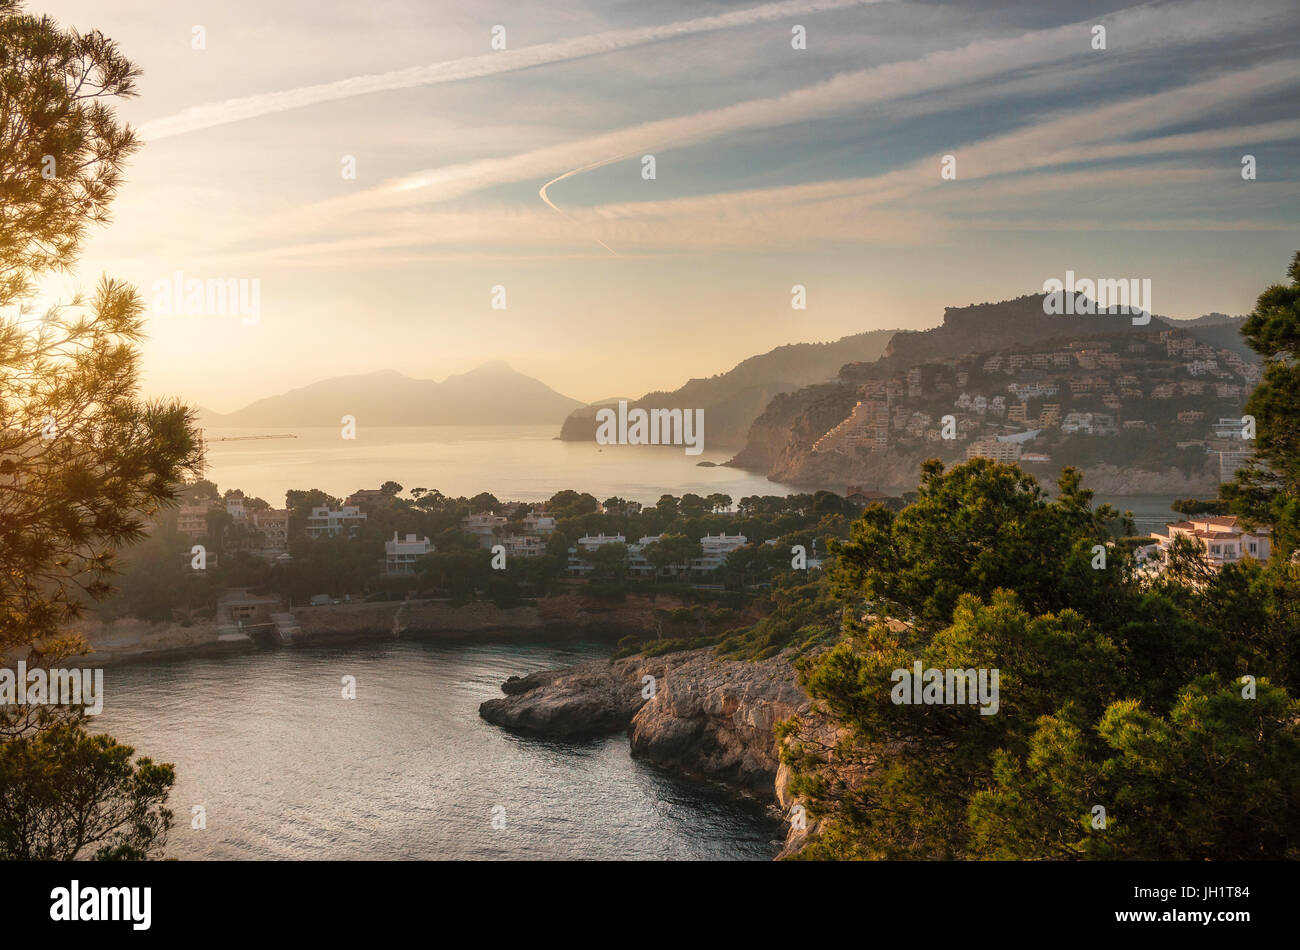 Aerial view of Village of Port Andratx and villas of Cap de sa Mola at sunset, Mallorca, Baleares, Spain - Stock Image